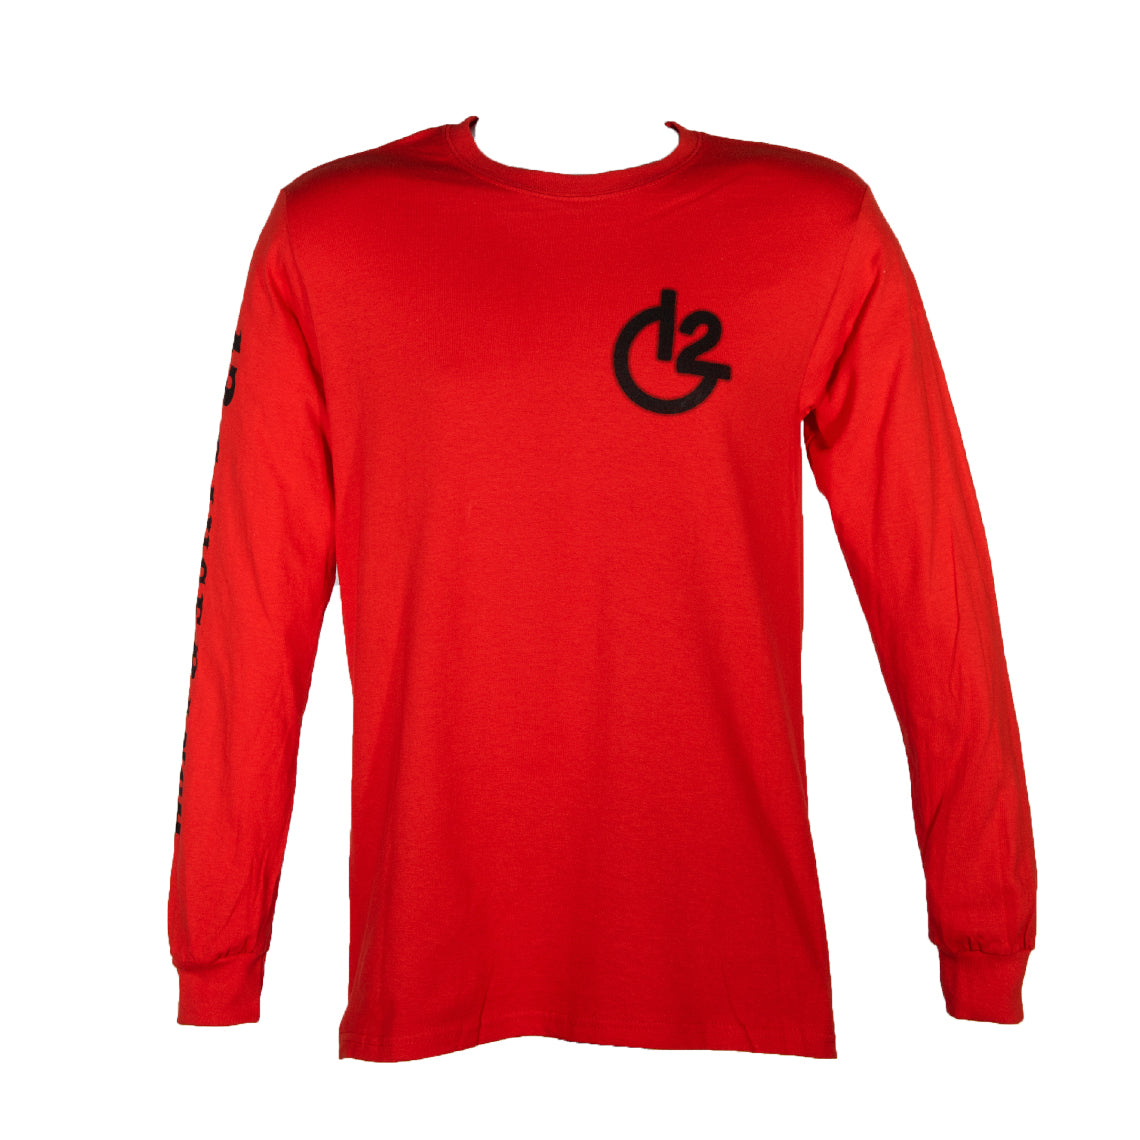 Red 12 Gauge Ranch Long Sleeve Shirt (12GARDLS), Apparel, 12 Gauge Ranch, 12 Gauge Ranch 12 Gauge Ranch